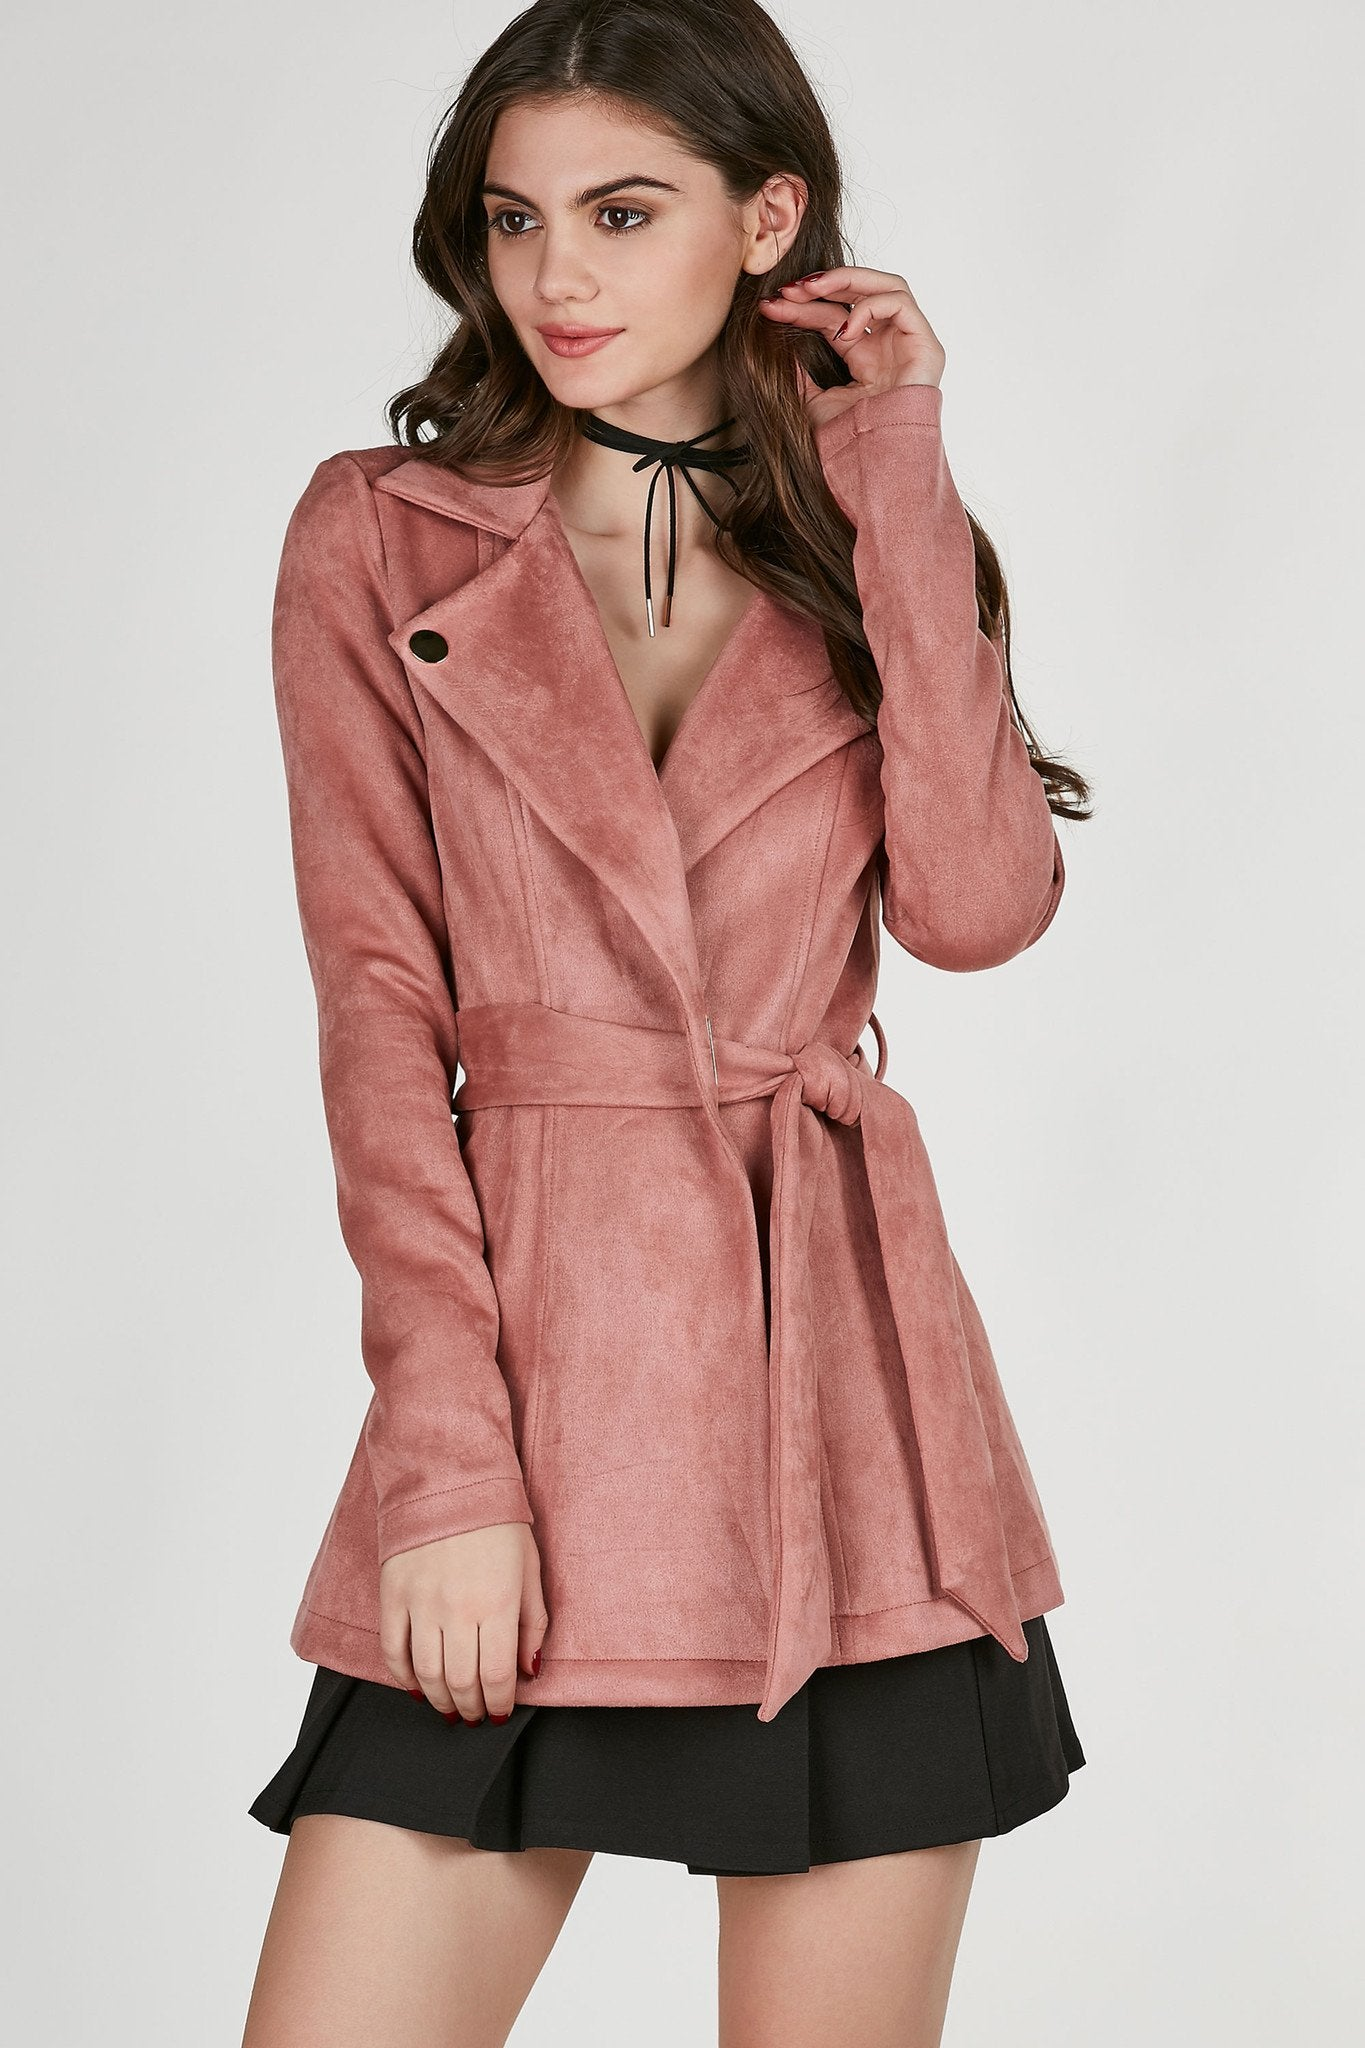 Chic trench style coat with soft suede finish. Bold lapels with gold hardware detailing and waist tie for closure.